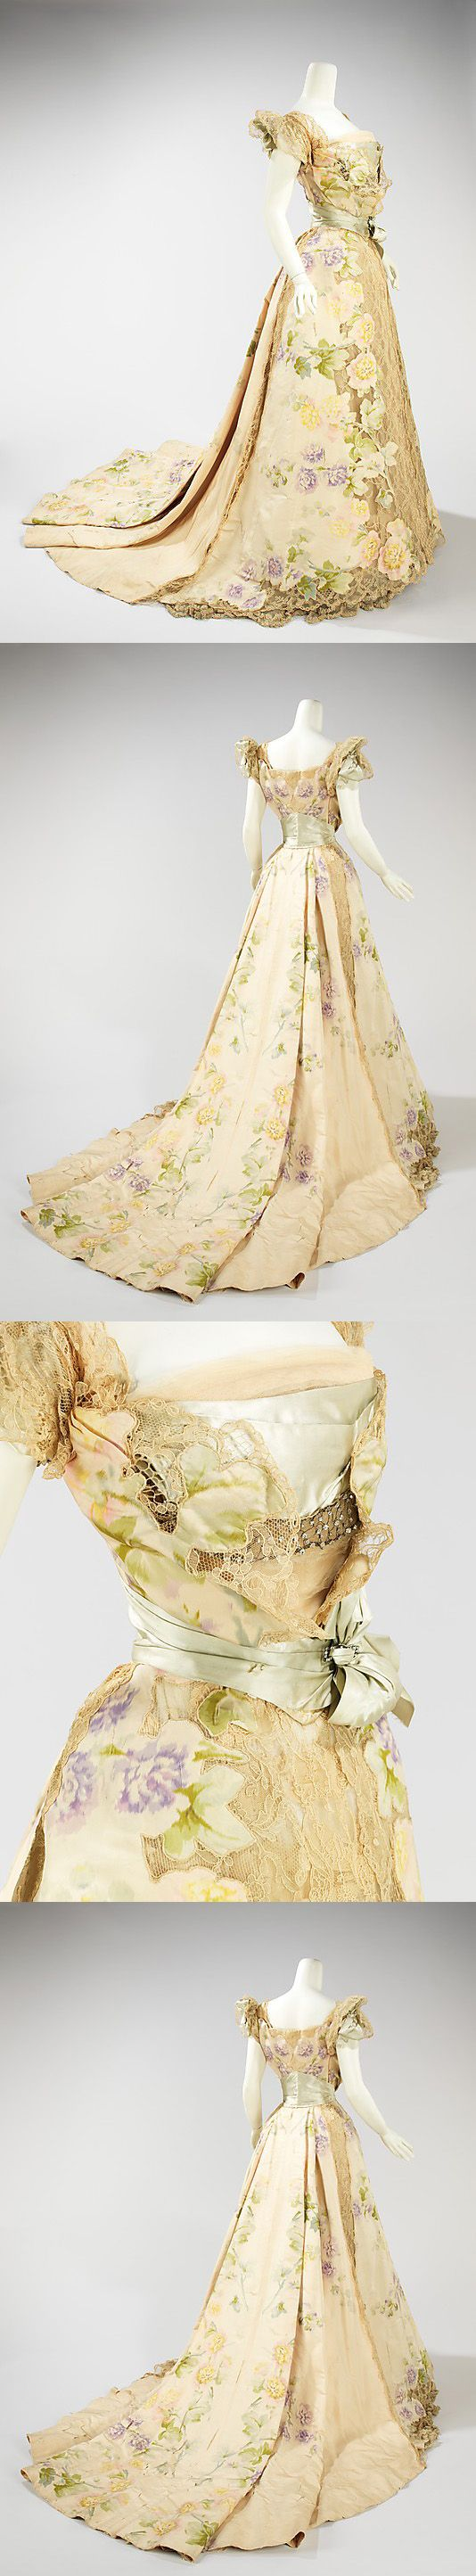 I've pinned a close-up of this dress before, but it's worth sharing it in full view! (Evening dress, House of Worth, 1902)